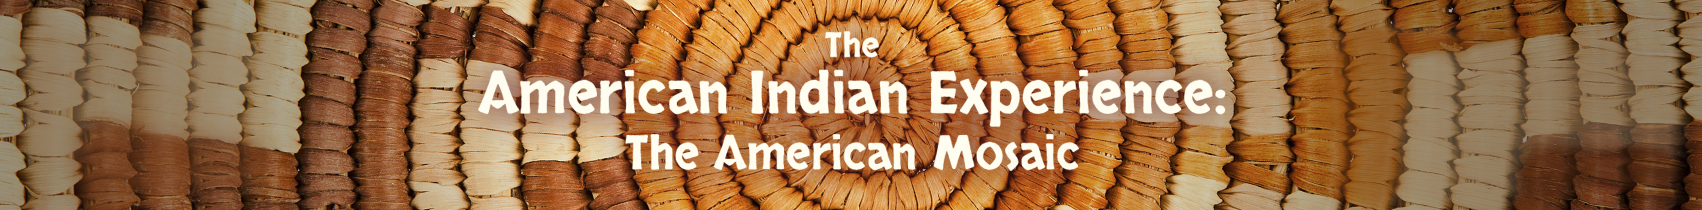 ABC-CLIO Solutions - The American Mosaic: The American Indian Experience